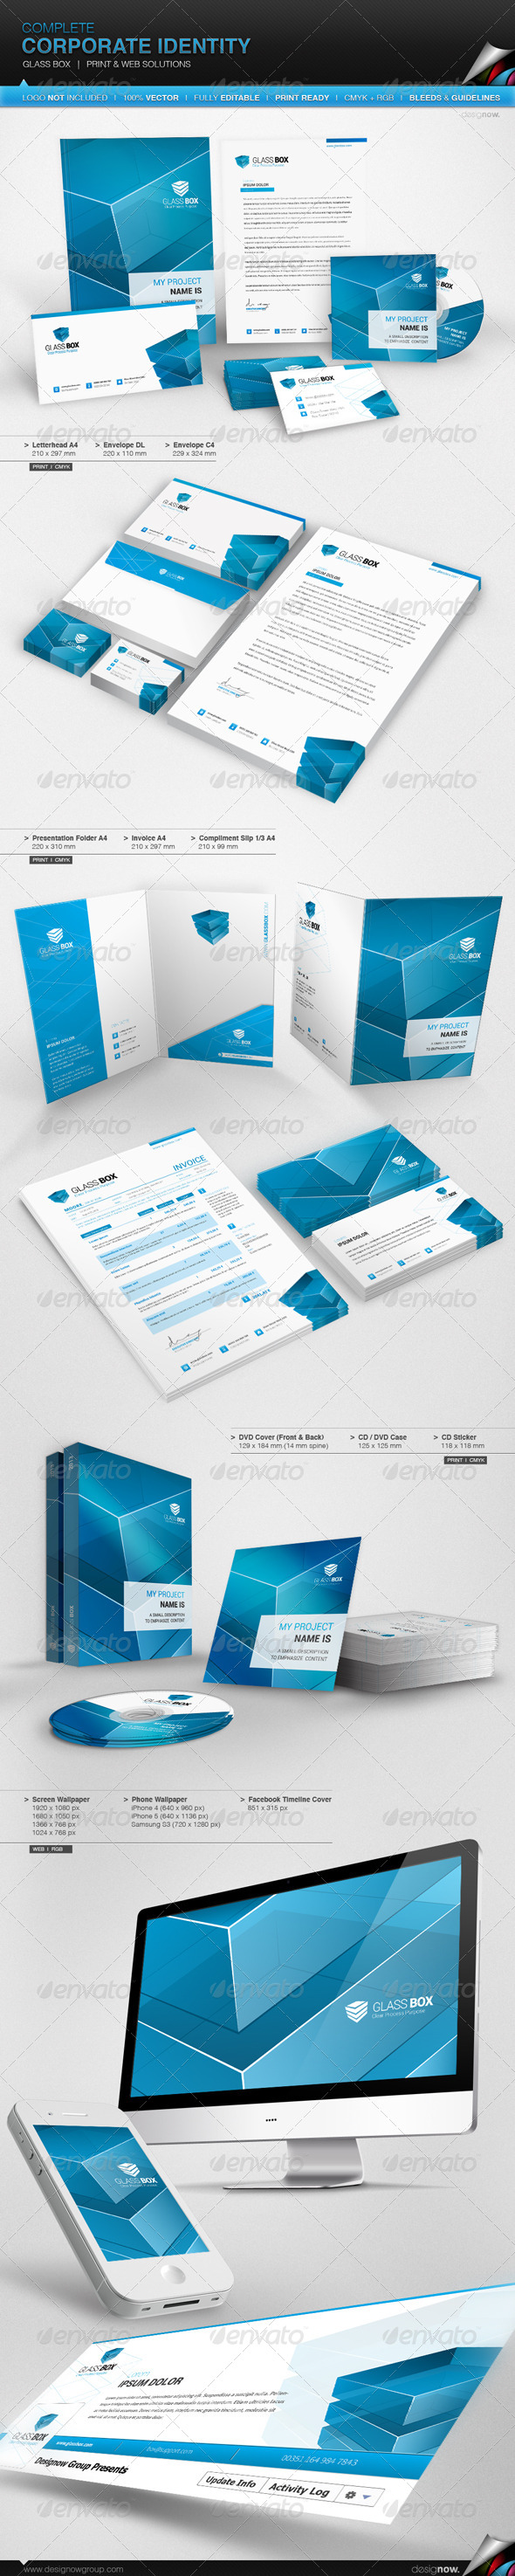 Corporate Identity - Glass Box - Stationery Print Templates